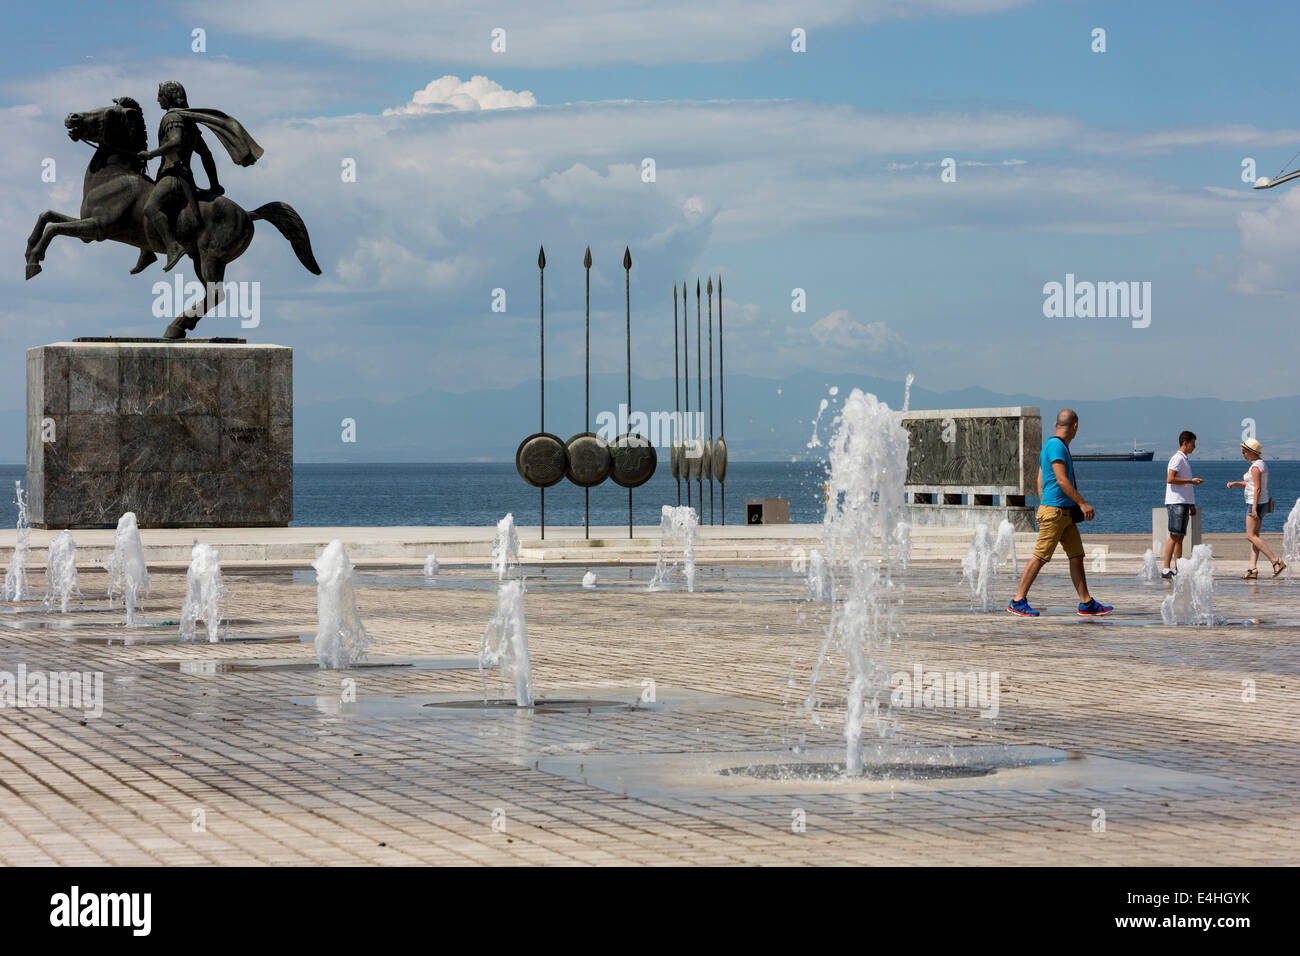 Tourist in front of a statue of Alexander the Great and his horse Bucephalus, during a sunny morning, in Thessaloniki, Stock Photo